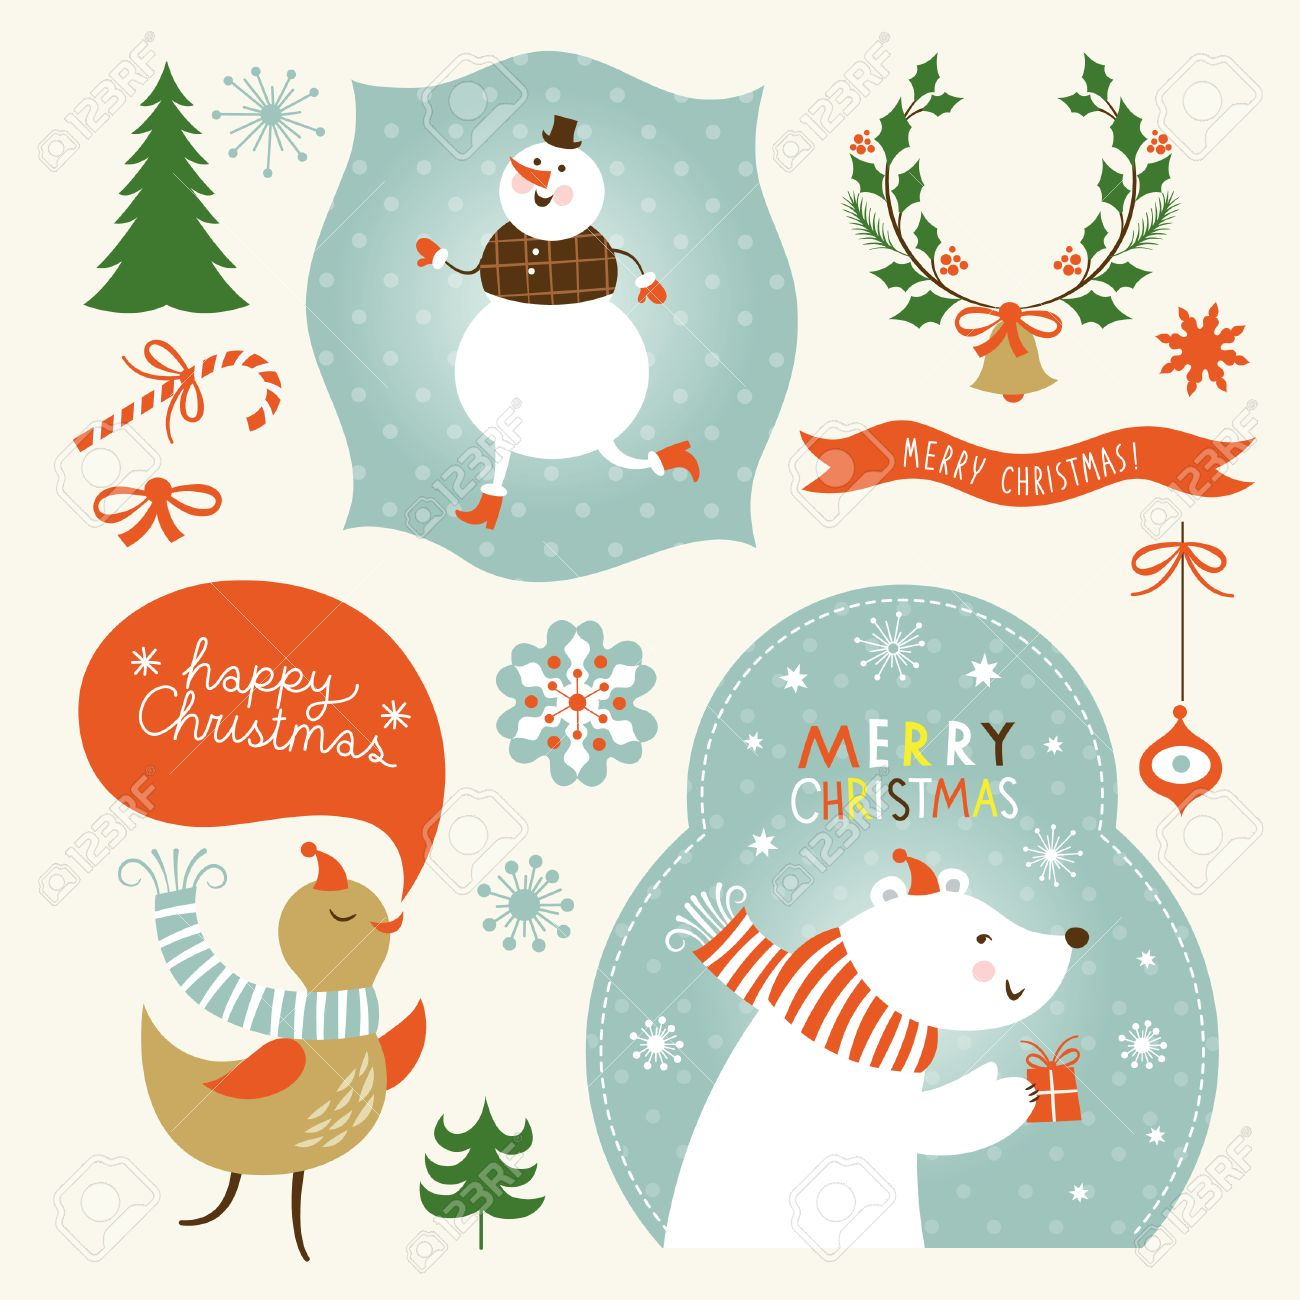 Christmas Graphic.Set Of Christmas And New Year S Graphic Elements